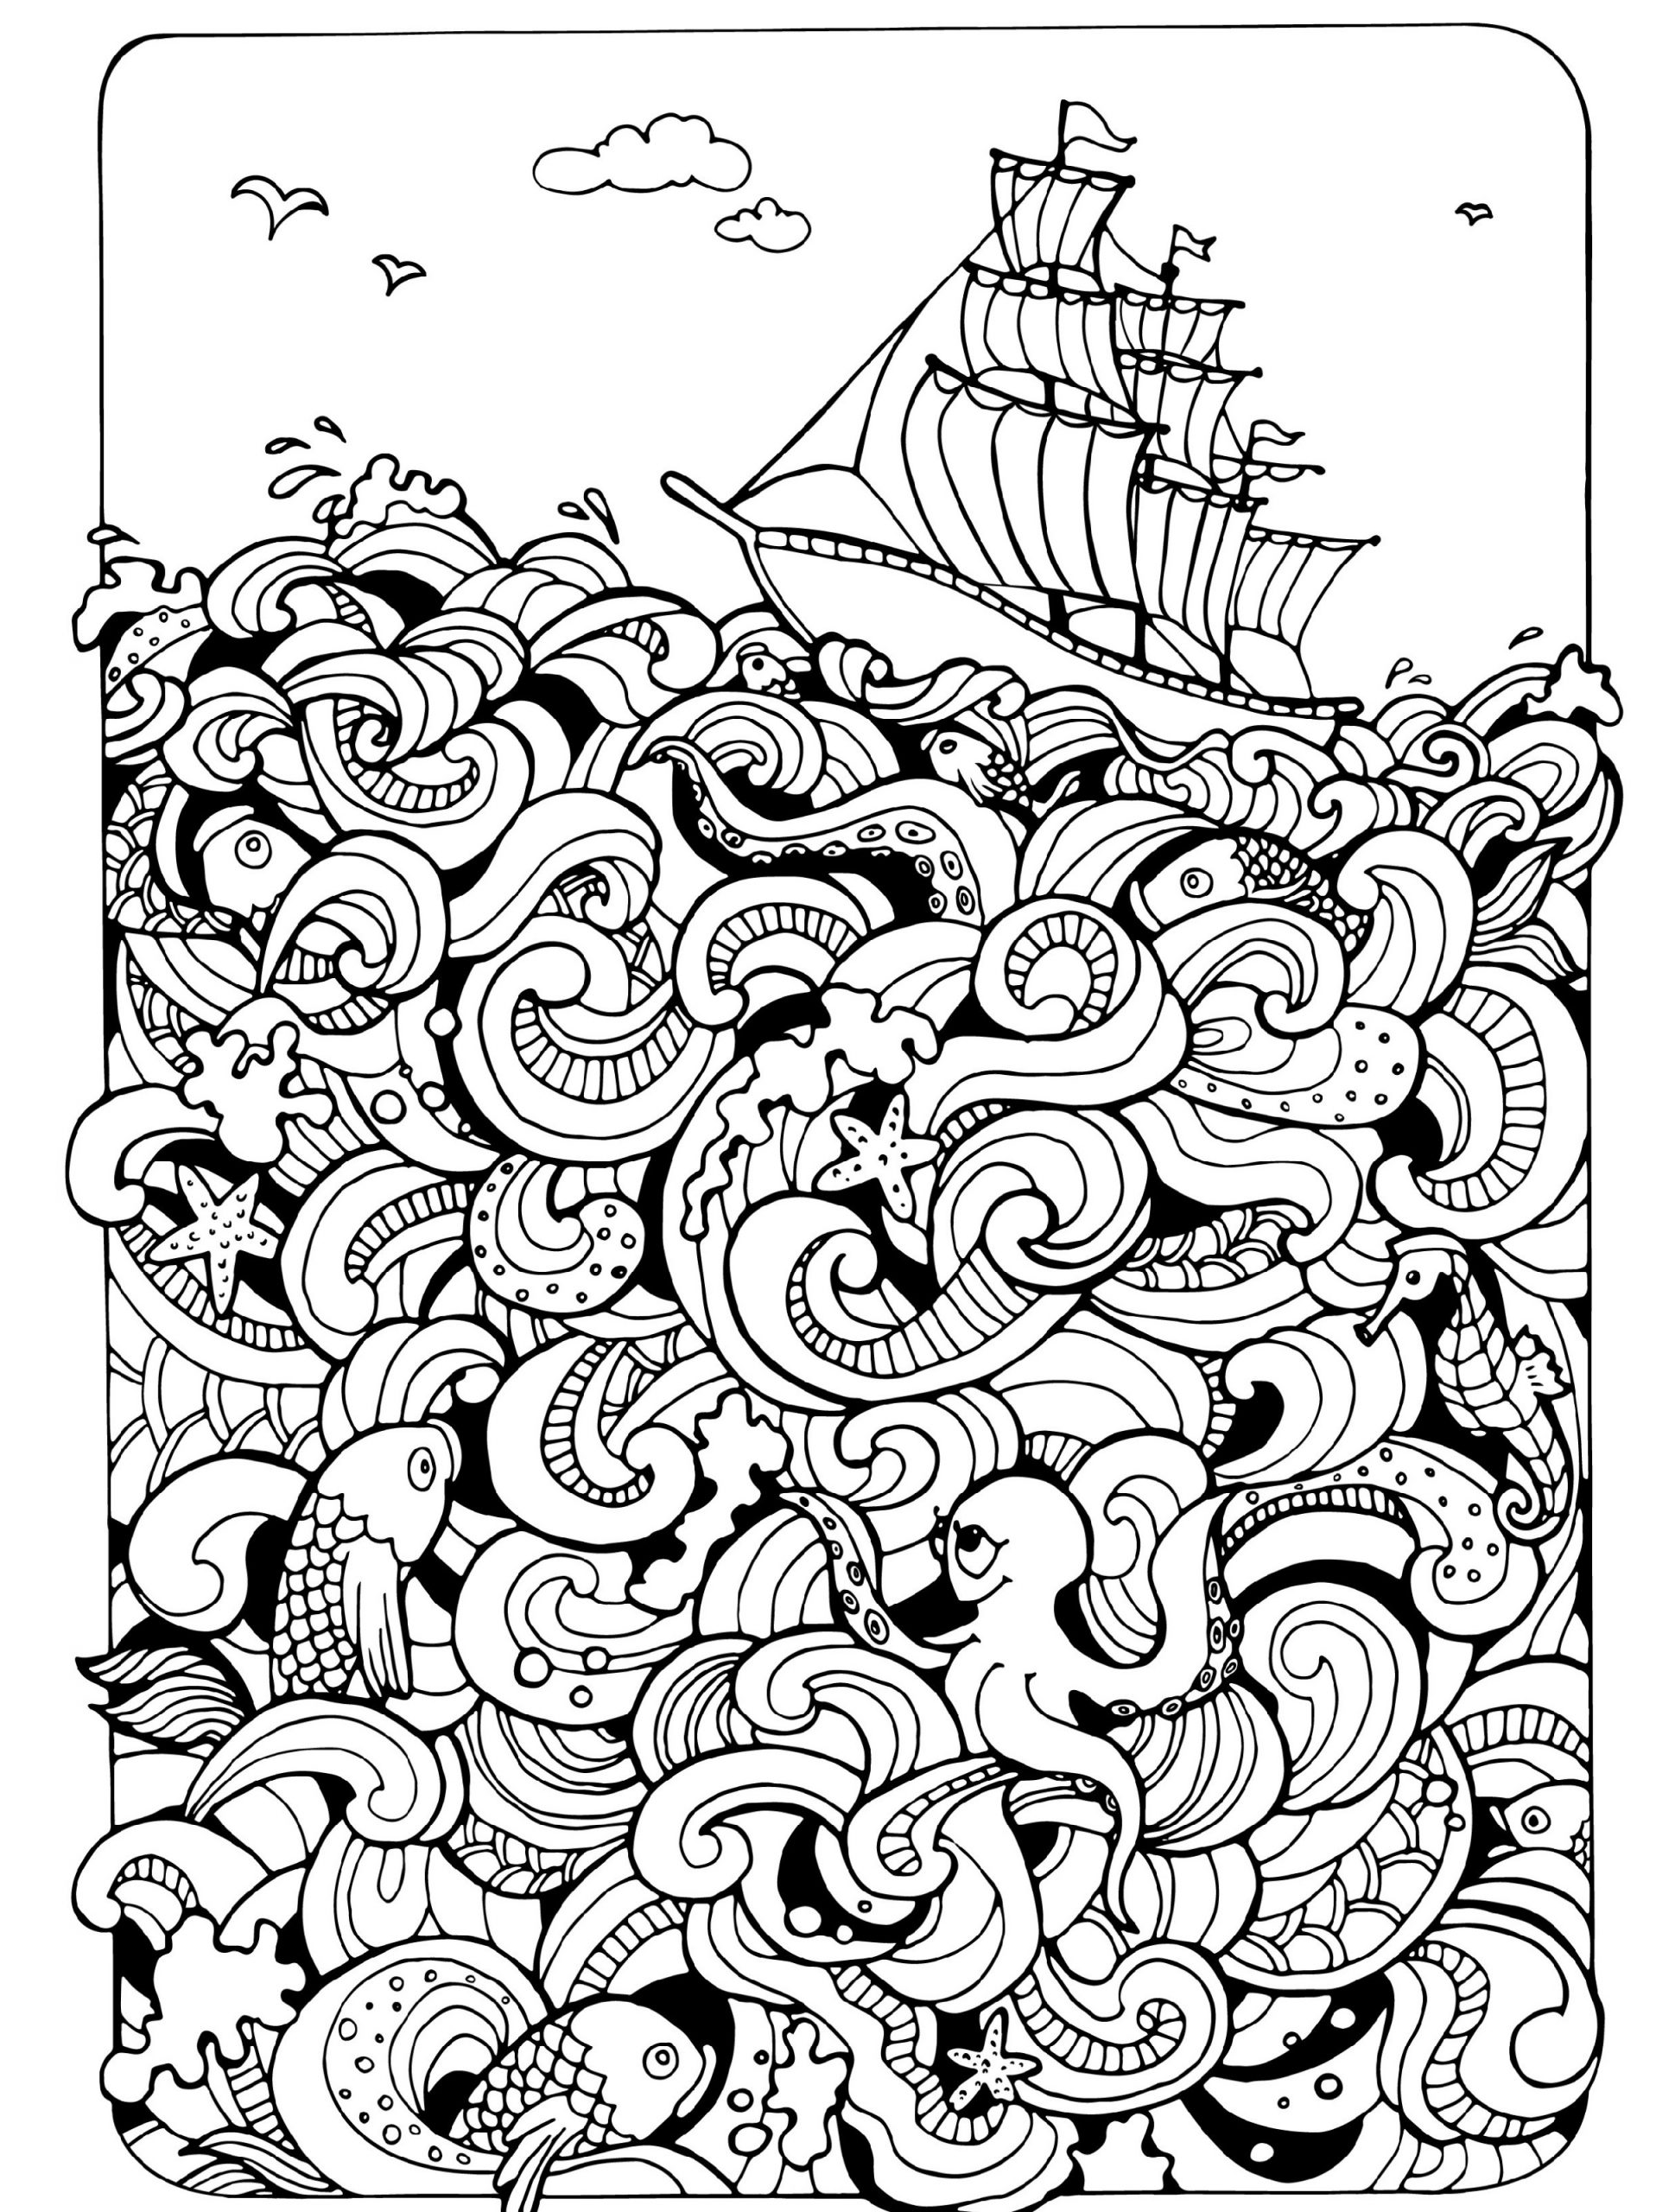 free coloring pages for teens free coloring pages for teens printable to download teens pages coloring free for